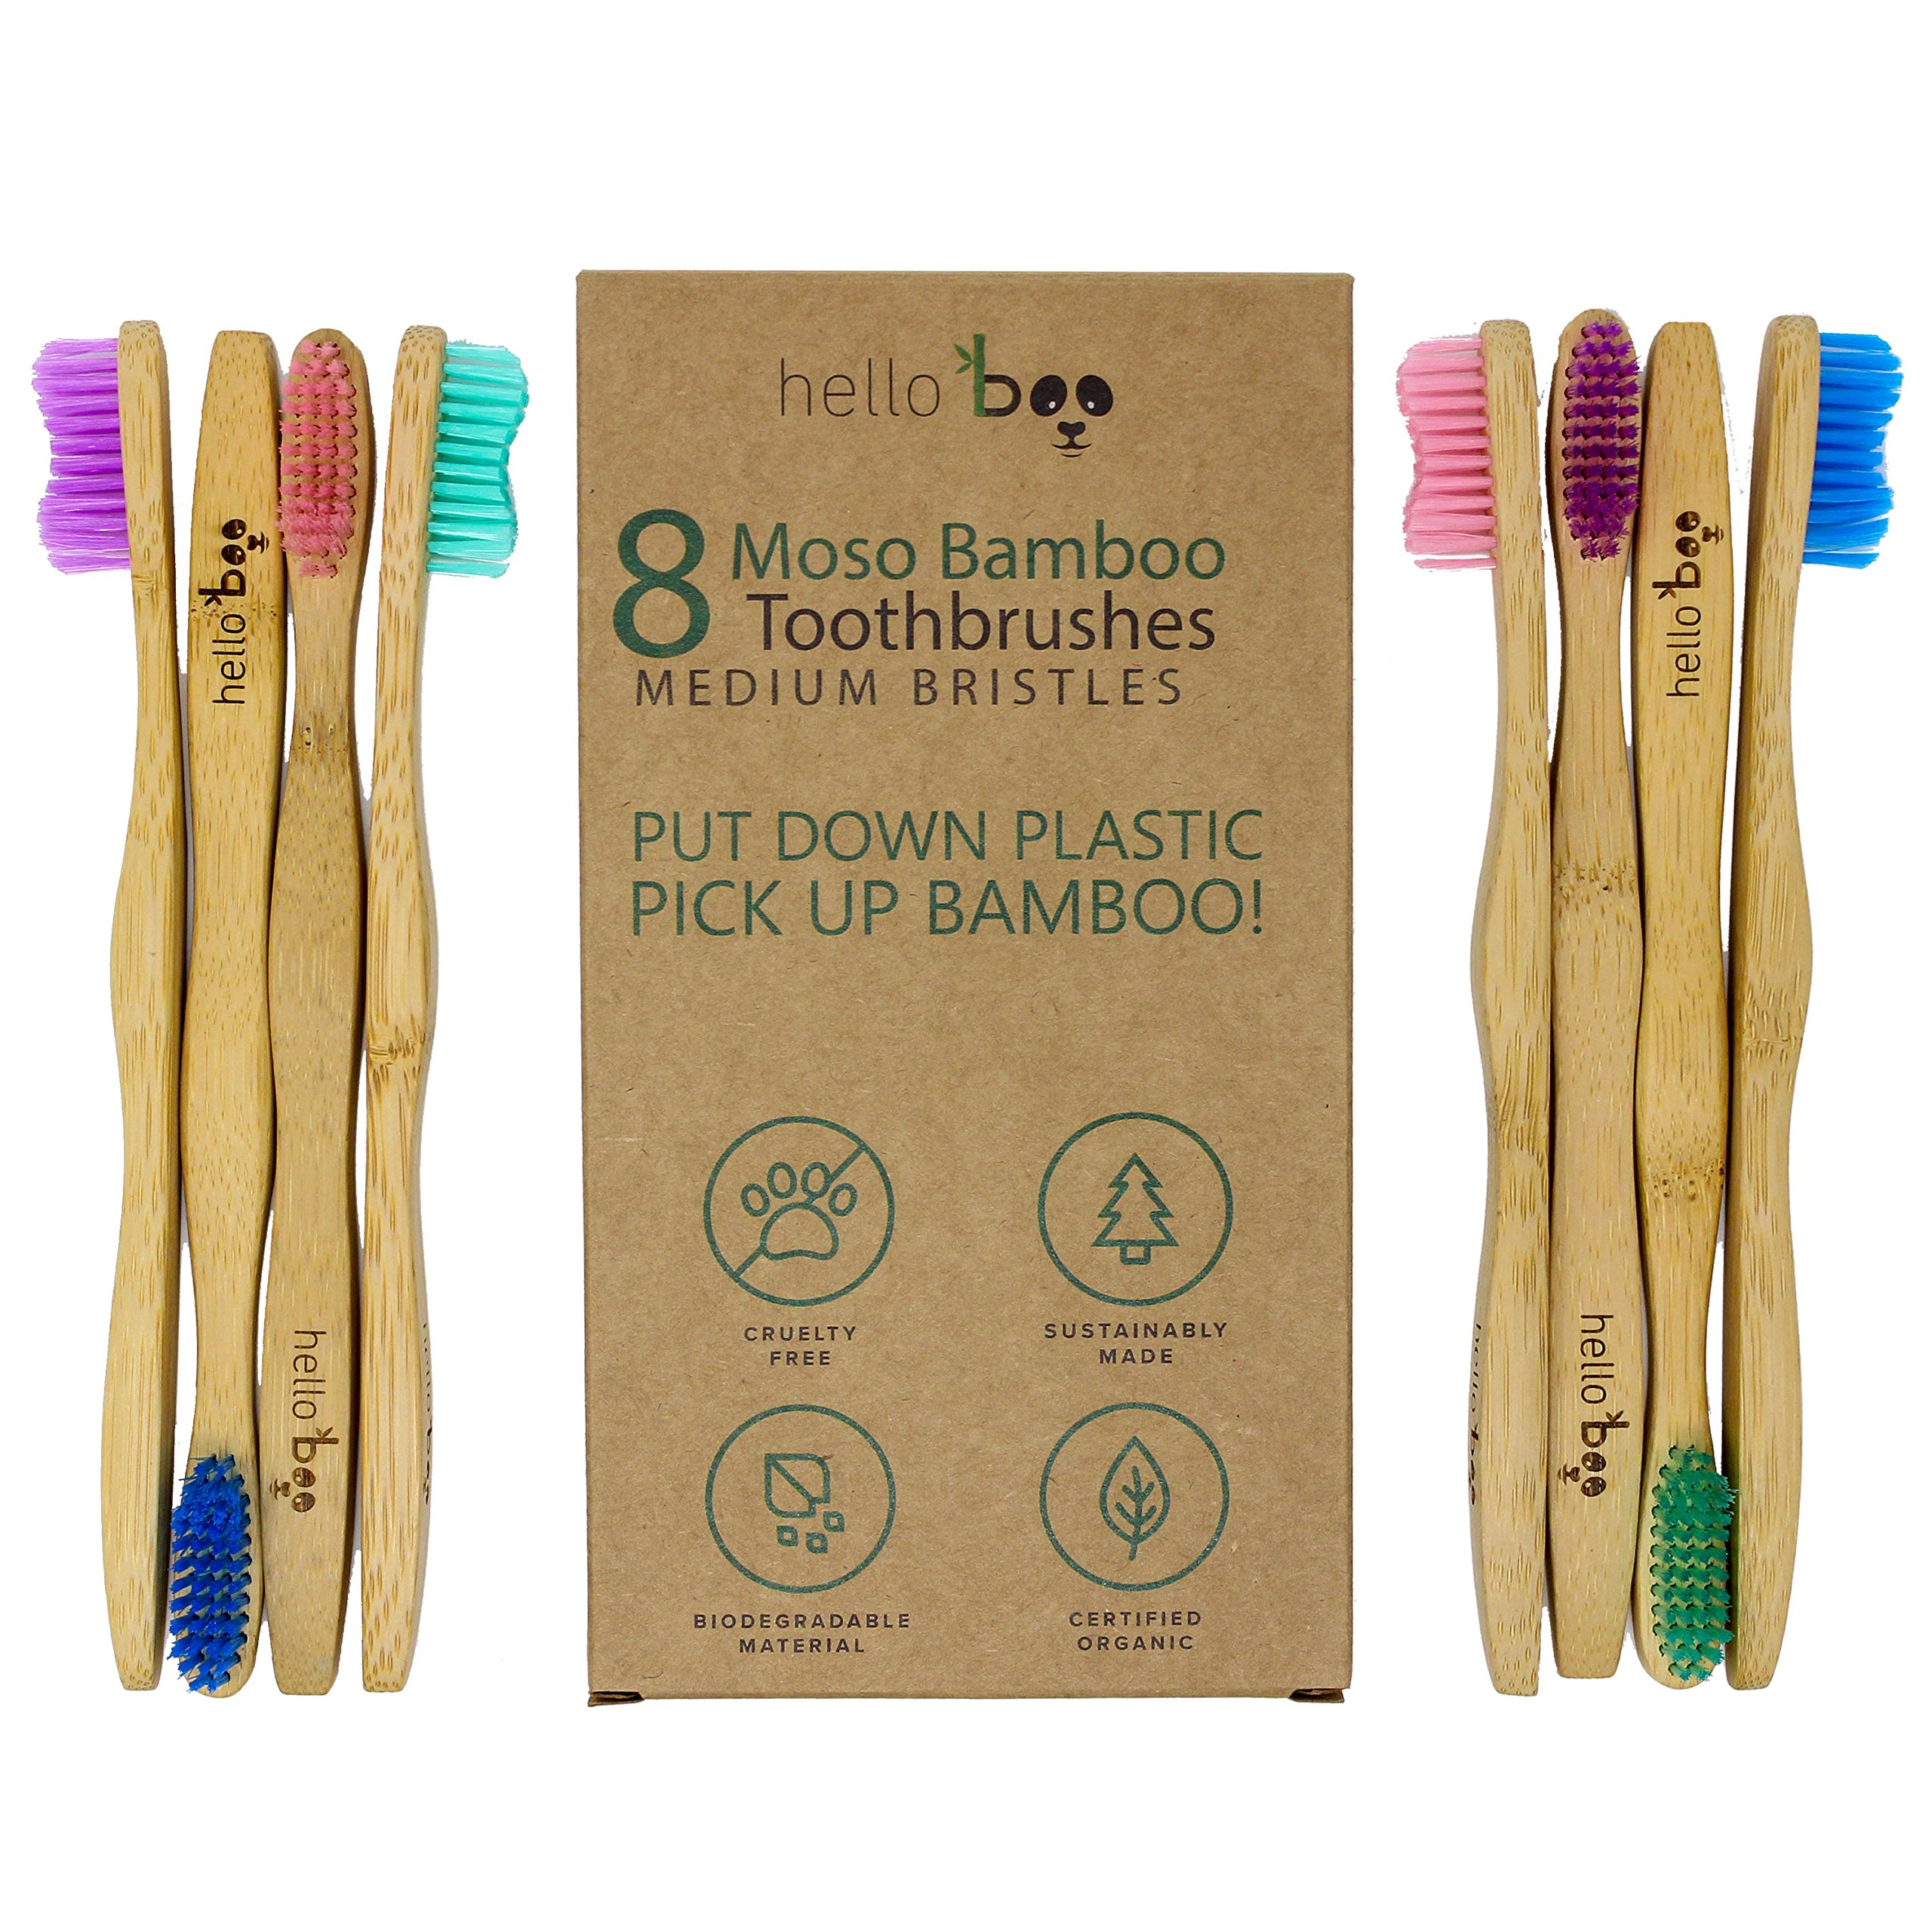 Bamboo Toothbrush - Pack of 8 Biodegradable Tooth Brush Set - Organic Eco-Friendly Moso Bamboo with Ergonomic Handles & Medium BPA Free Nylon Bristles | by Hello Boo (Adults)